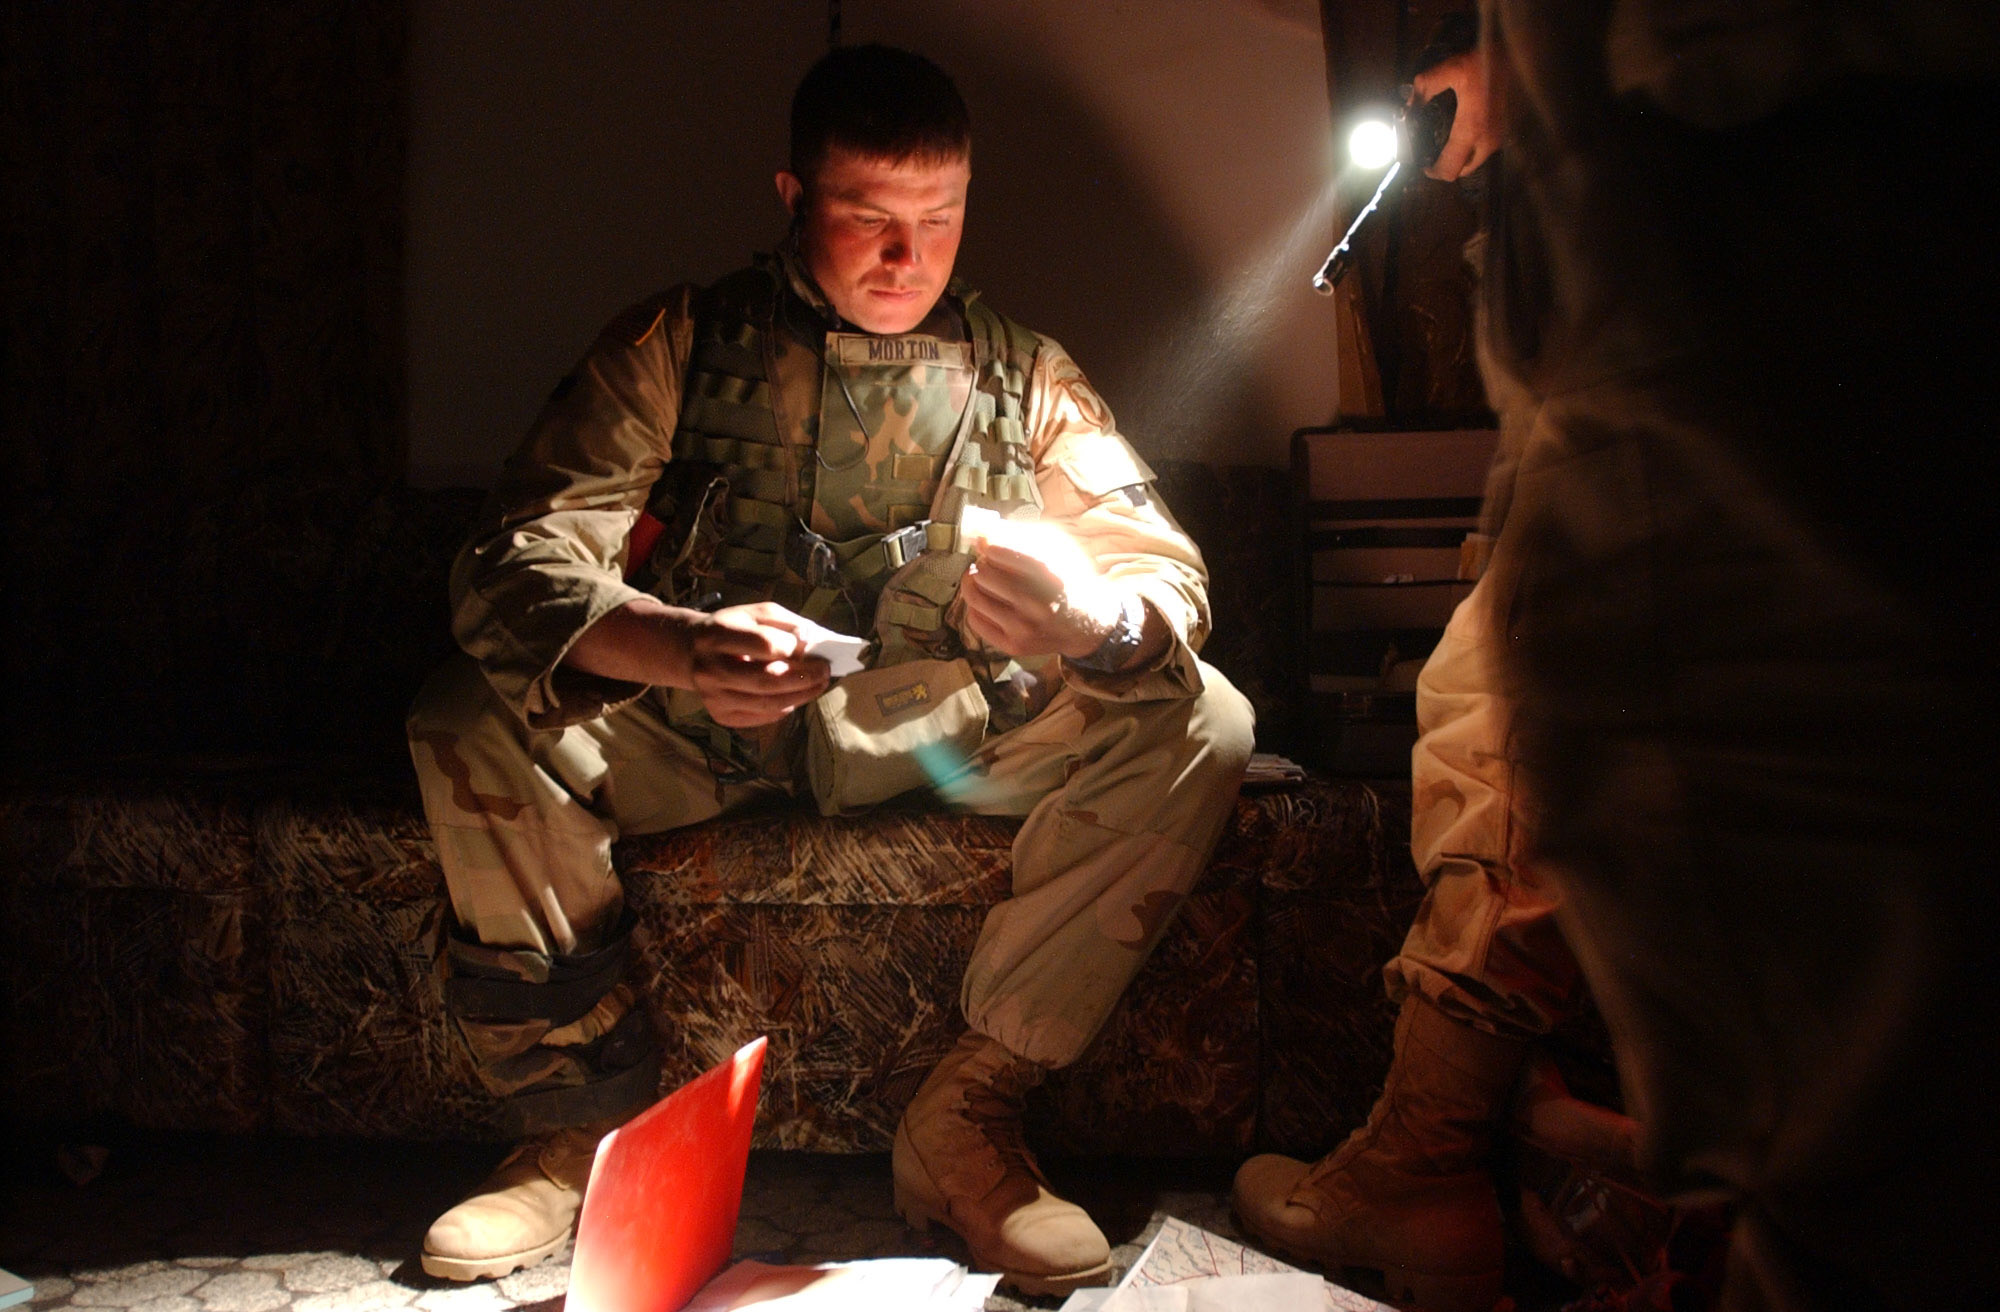 Staff Sgt. Todd Morton, 27, from Cohoes, NY, looks through documents and maps found after 2nd platoon, bravo company, 3rd Battalion, 2nd Brigade, 101st Airborne Divison (Air Assault) occupied a hastily abandoned residence during the Brigade's southern movement toward the city of An Najaf, Wednesday, 4/2/03. The infantry company searched several buildings turning up uniforms, communication equipment and gas masks, vehicles , dozens of small and large caliber weapons, RPGs, US style uniforms and other personal items, as well as uncovering at least two BM21, a Russian made Multiple Launch Rocket System (MLRS). (Rob Curtis/Army Times)